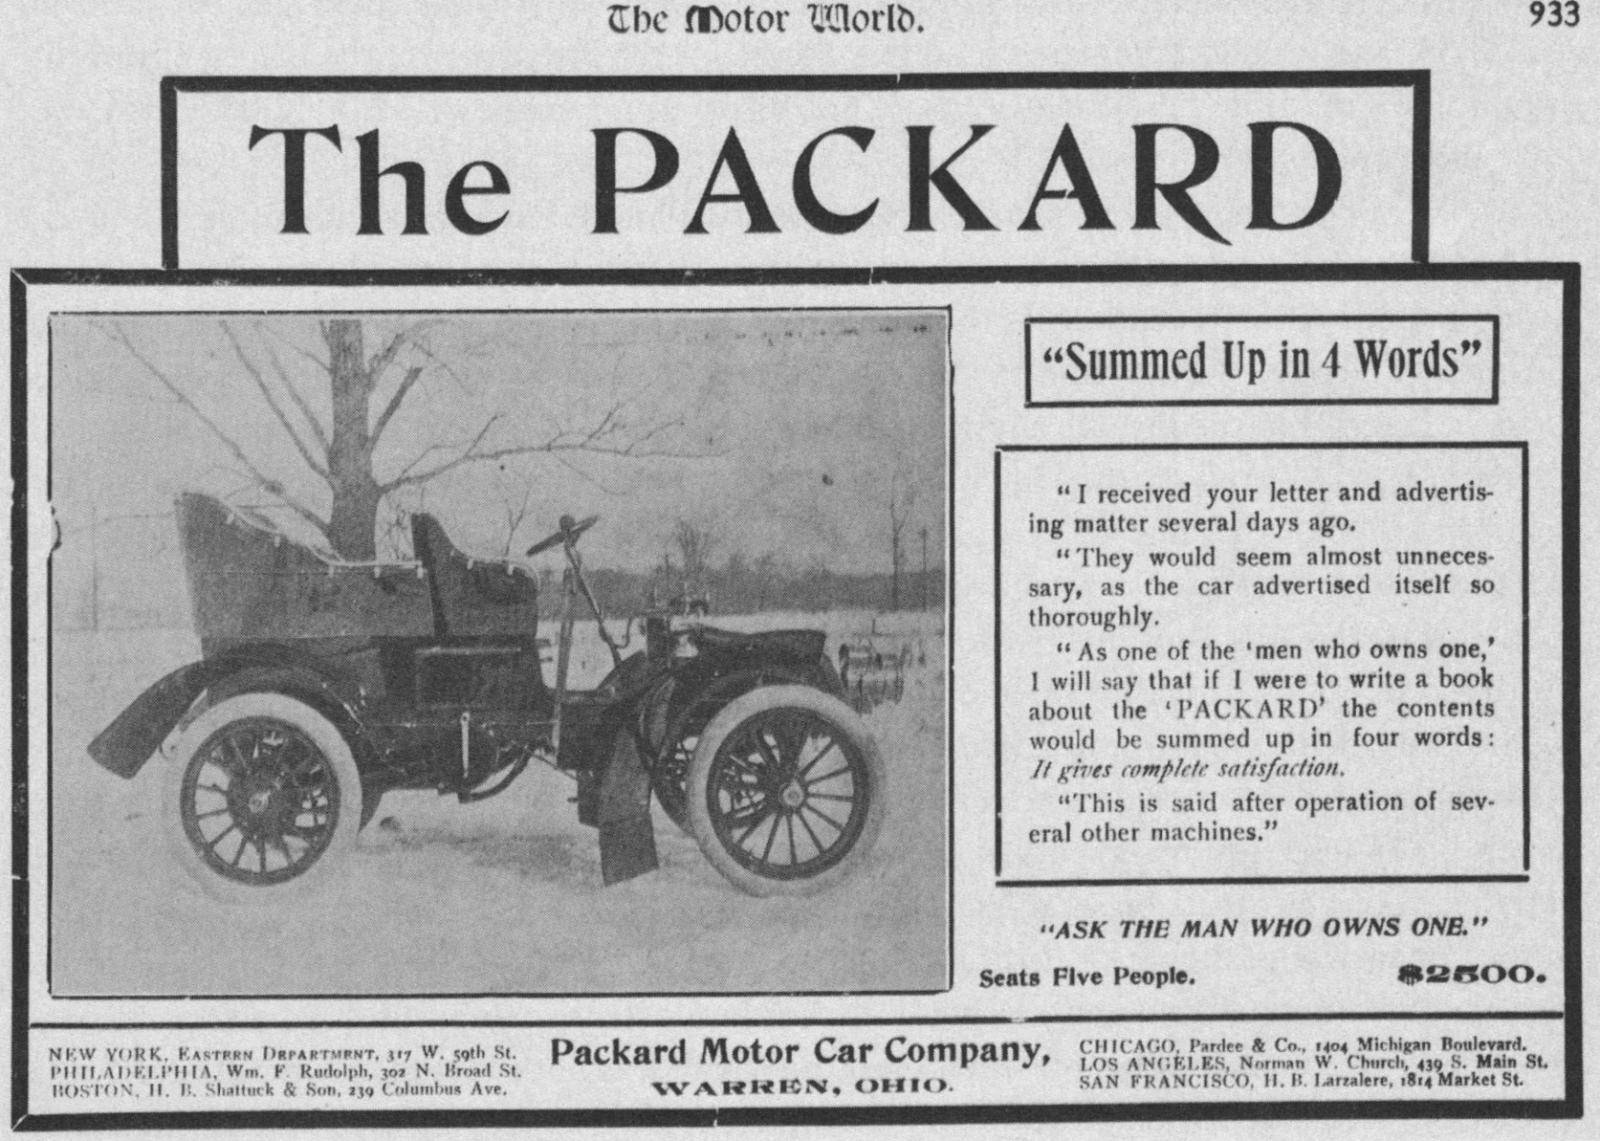 1903 PACKARD ADVERT-B&W